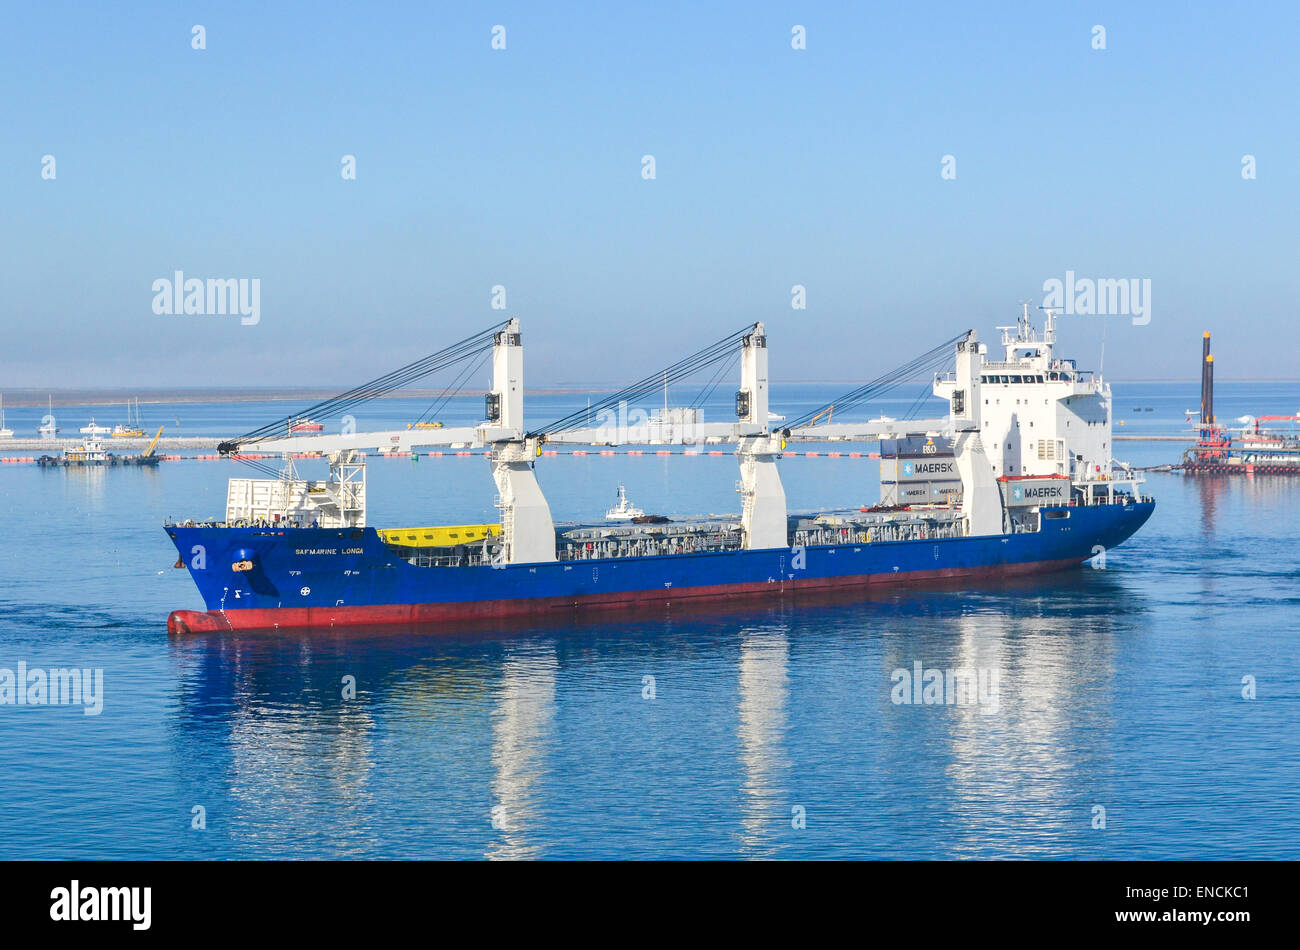 Ship entering the port of Walvis Bay, Namibia - Stock Image